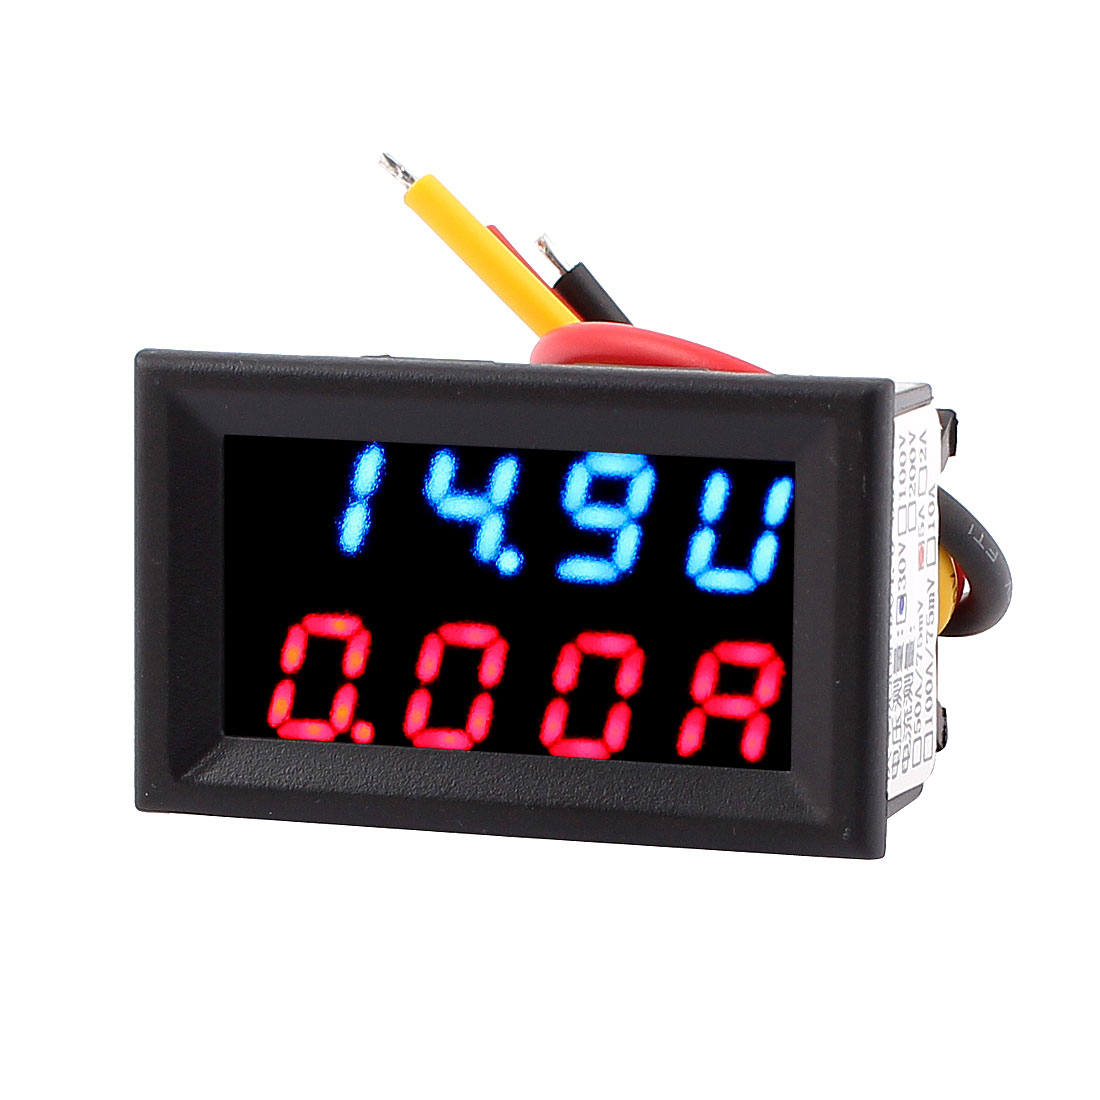 DC 4-30V 0-5A Dual LED Digital Mobile Battery Tester Monitor Voltage Current Meter